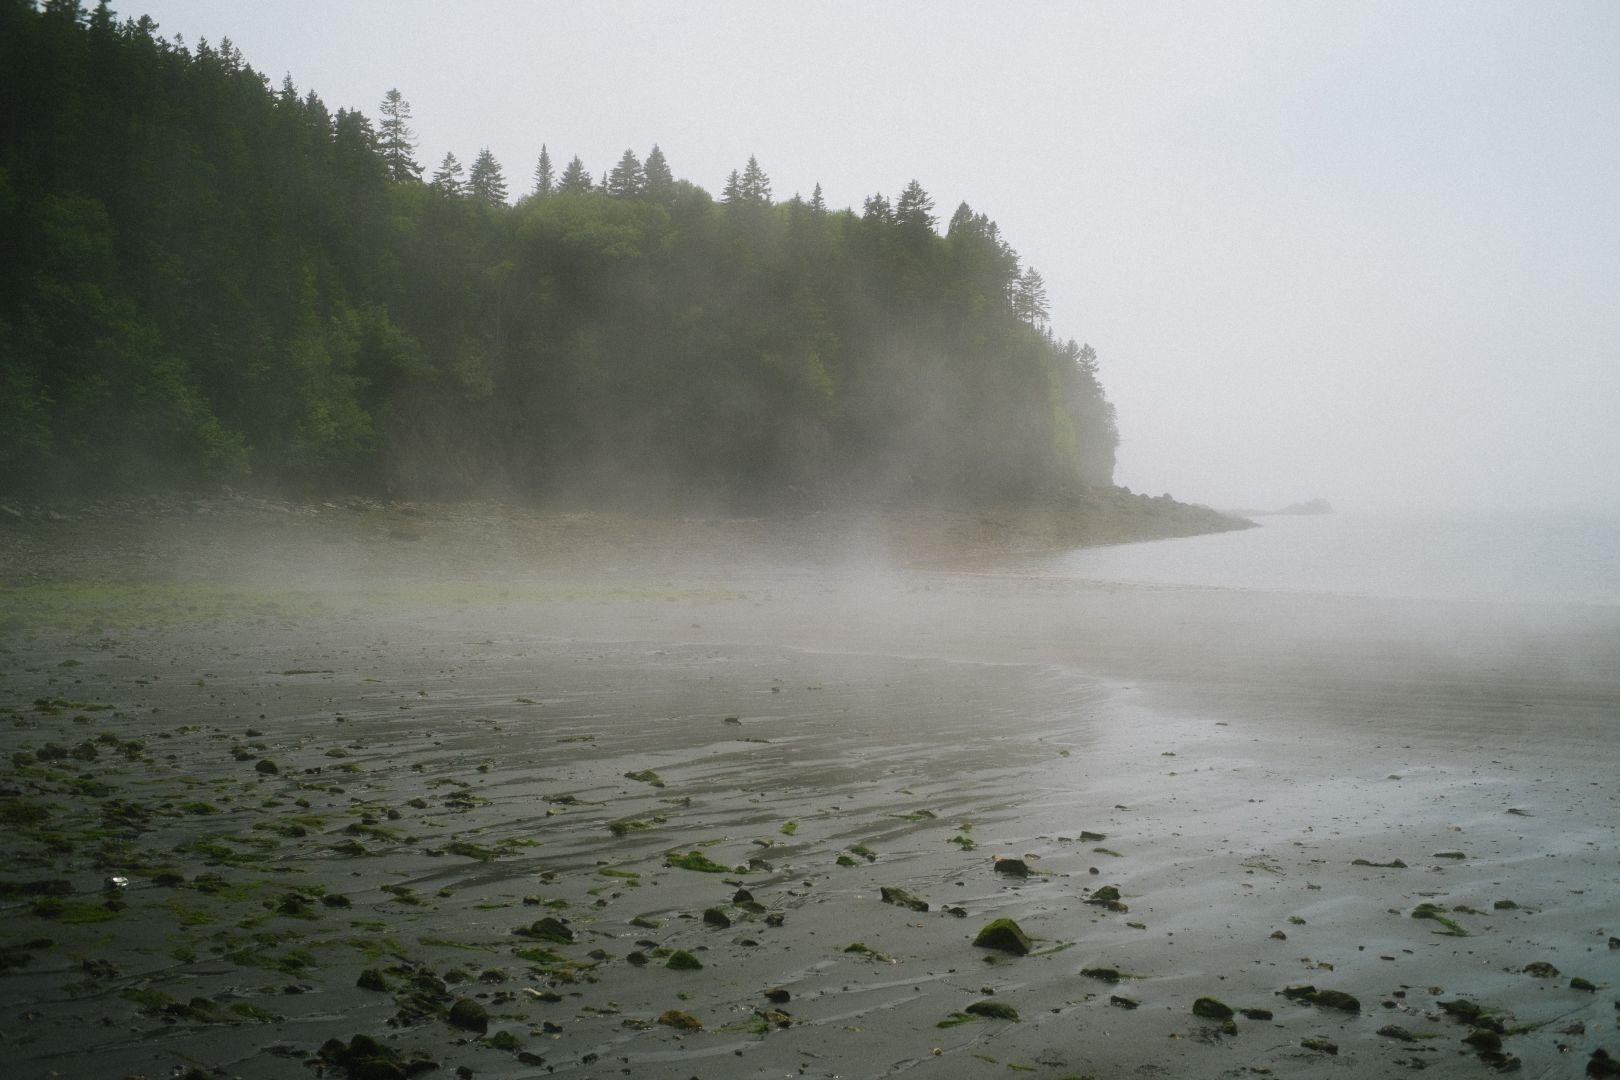 A photo depicting Rolling Fog Black Beach